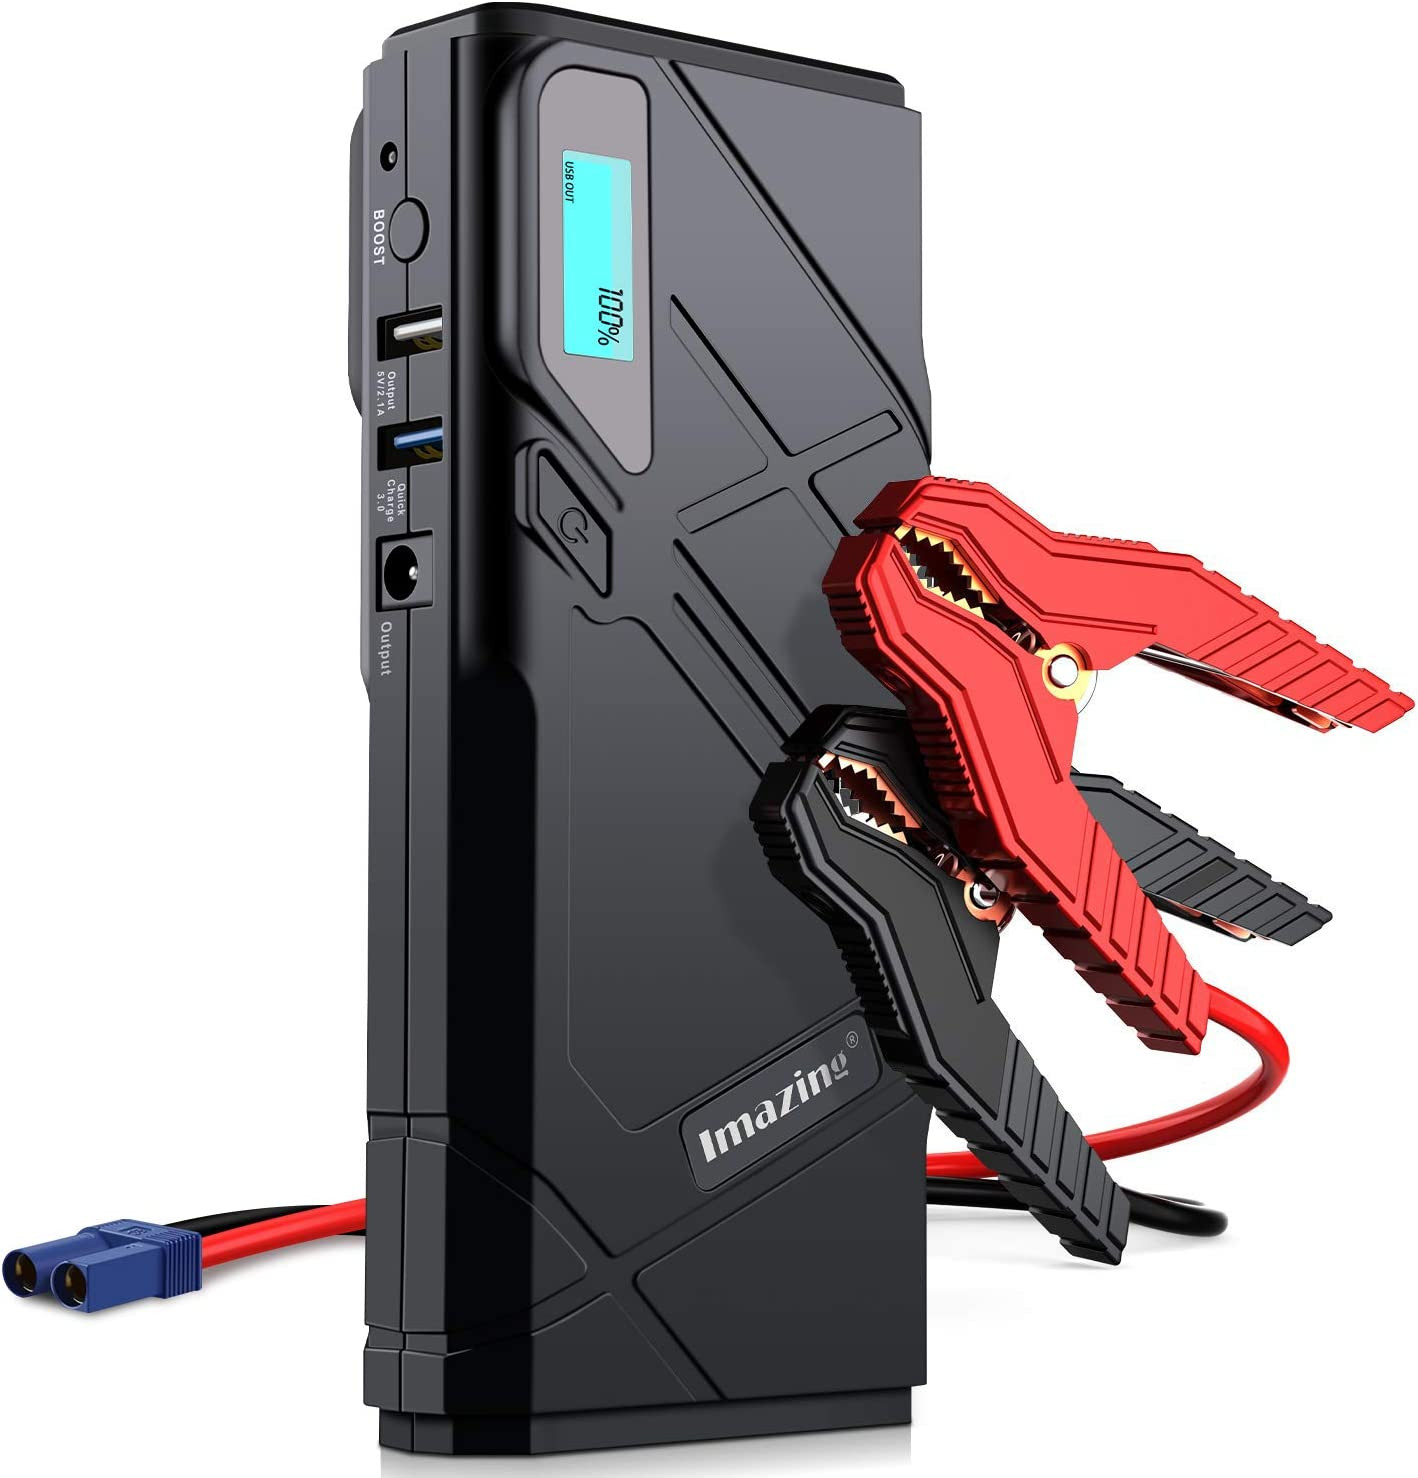 1500A Peak 20000mAh Portable Car Battery Charger Moto Battery Booster Power Pack with Smart Clamps USB Ports LED Light Car Jump Starter All Gas or 7.0L Diesel